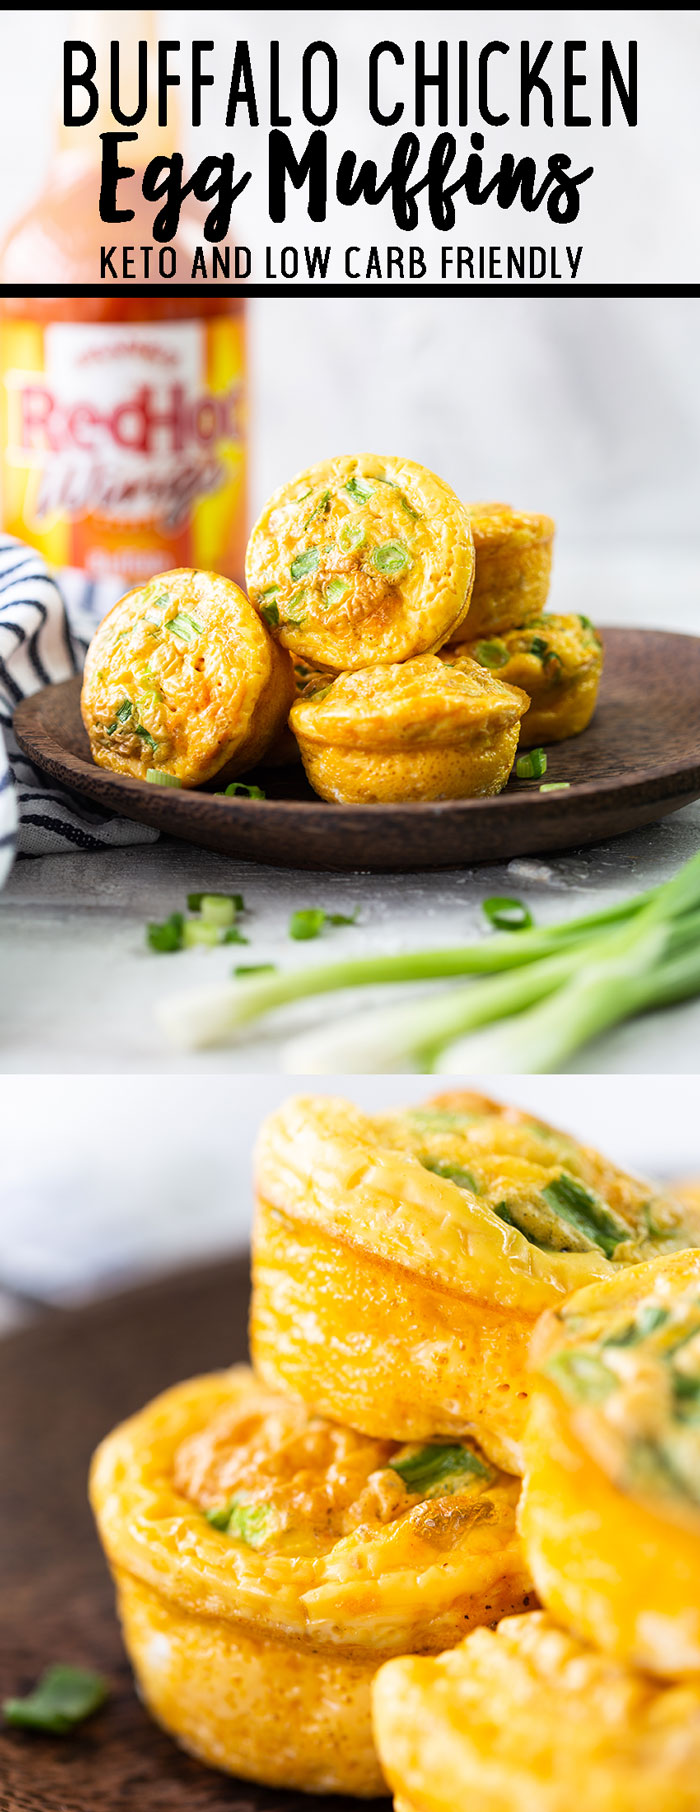 Buffalo chicken egg muffins or egg cups a great breakfast alternative.